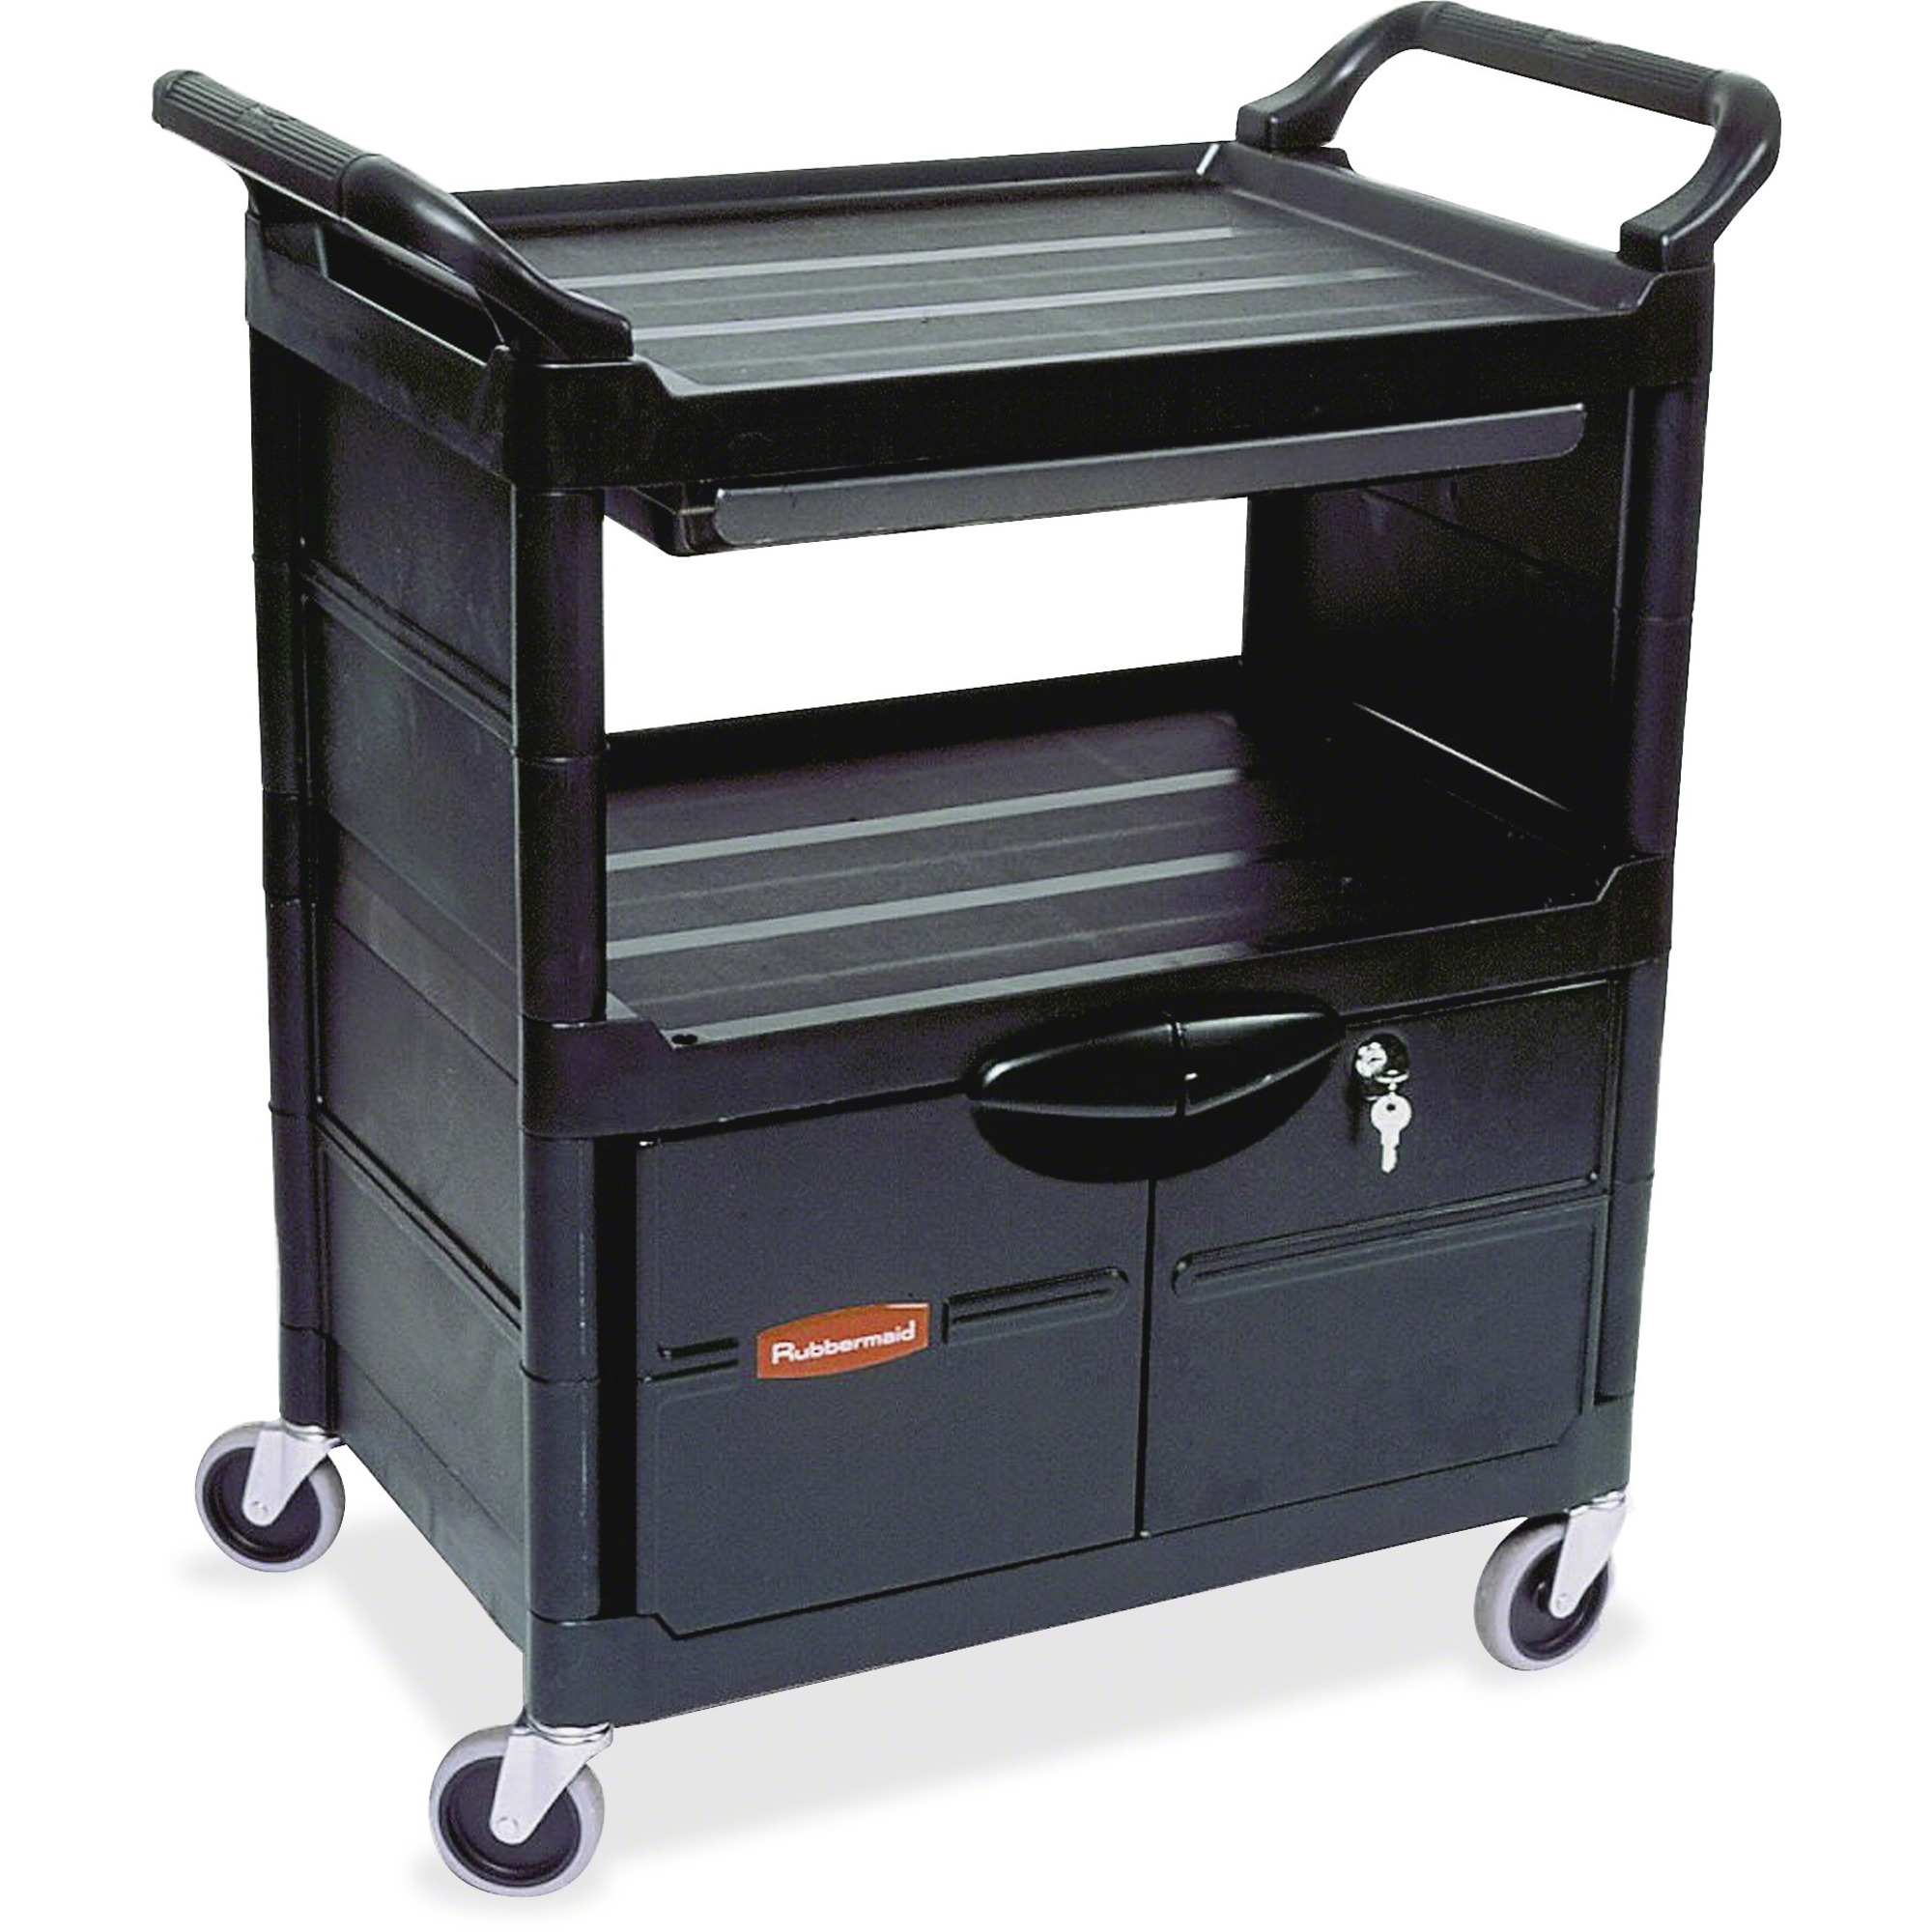 Rubbermaid Commercial Lockable Storage Utility Cart